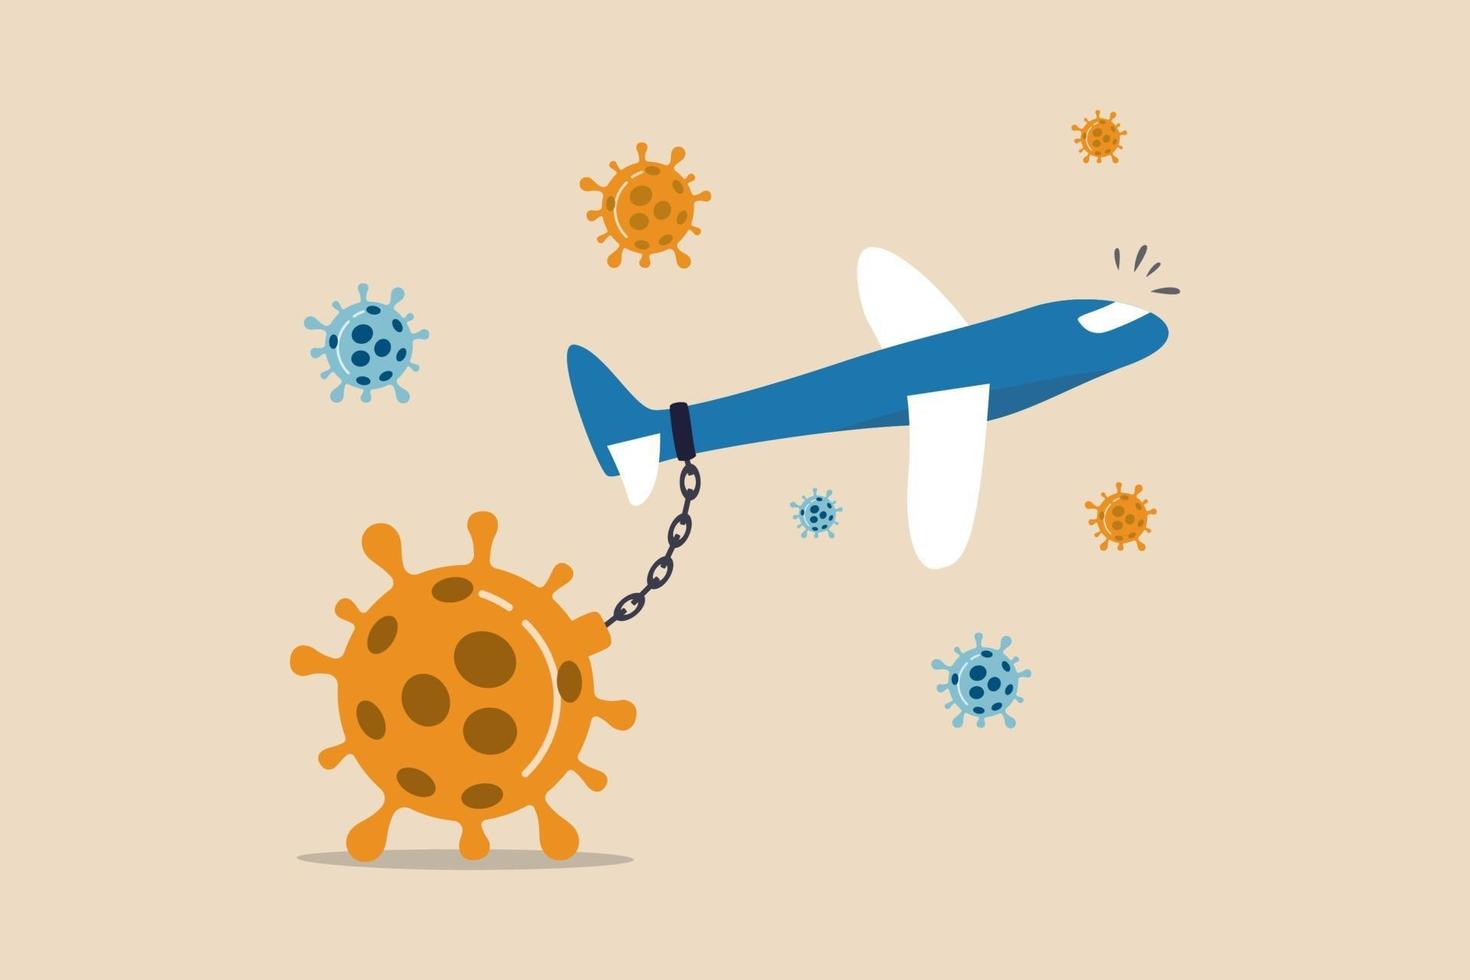 Airlines and travel industry impact financial problem bankrupt from Coronavirus COVID-19 outbreak crisis concept, commercial airplane chain with big heavy Coronavirus COVID-19 pathogen and cannot fly. vector